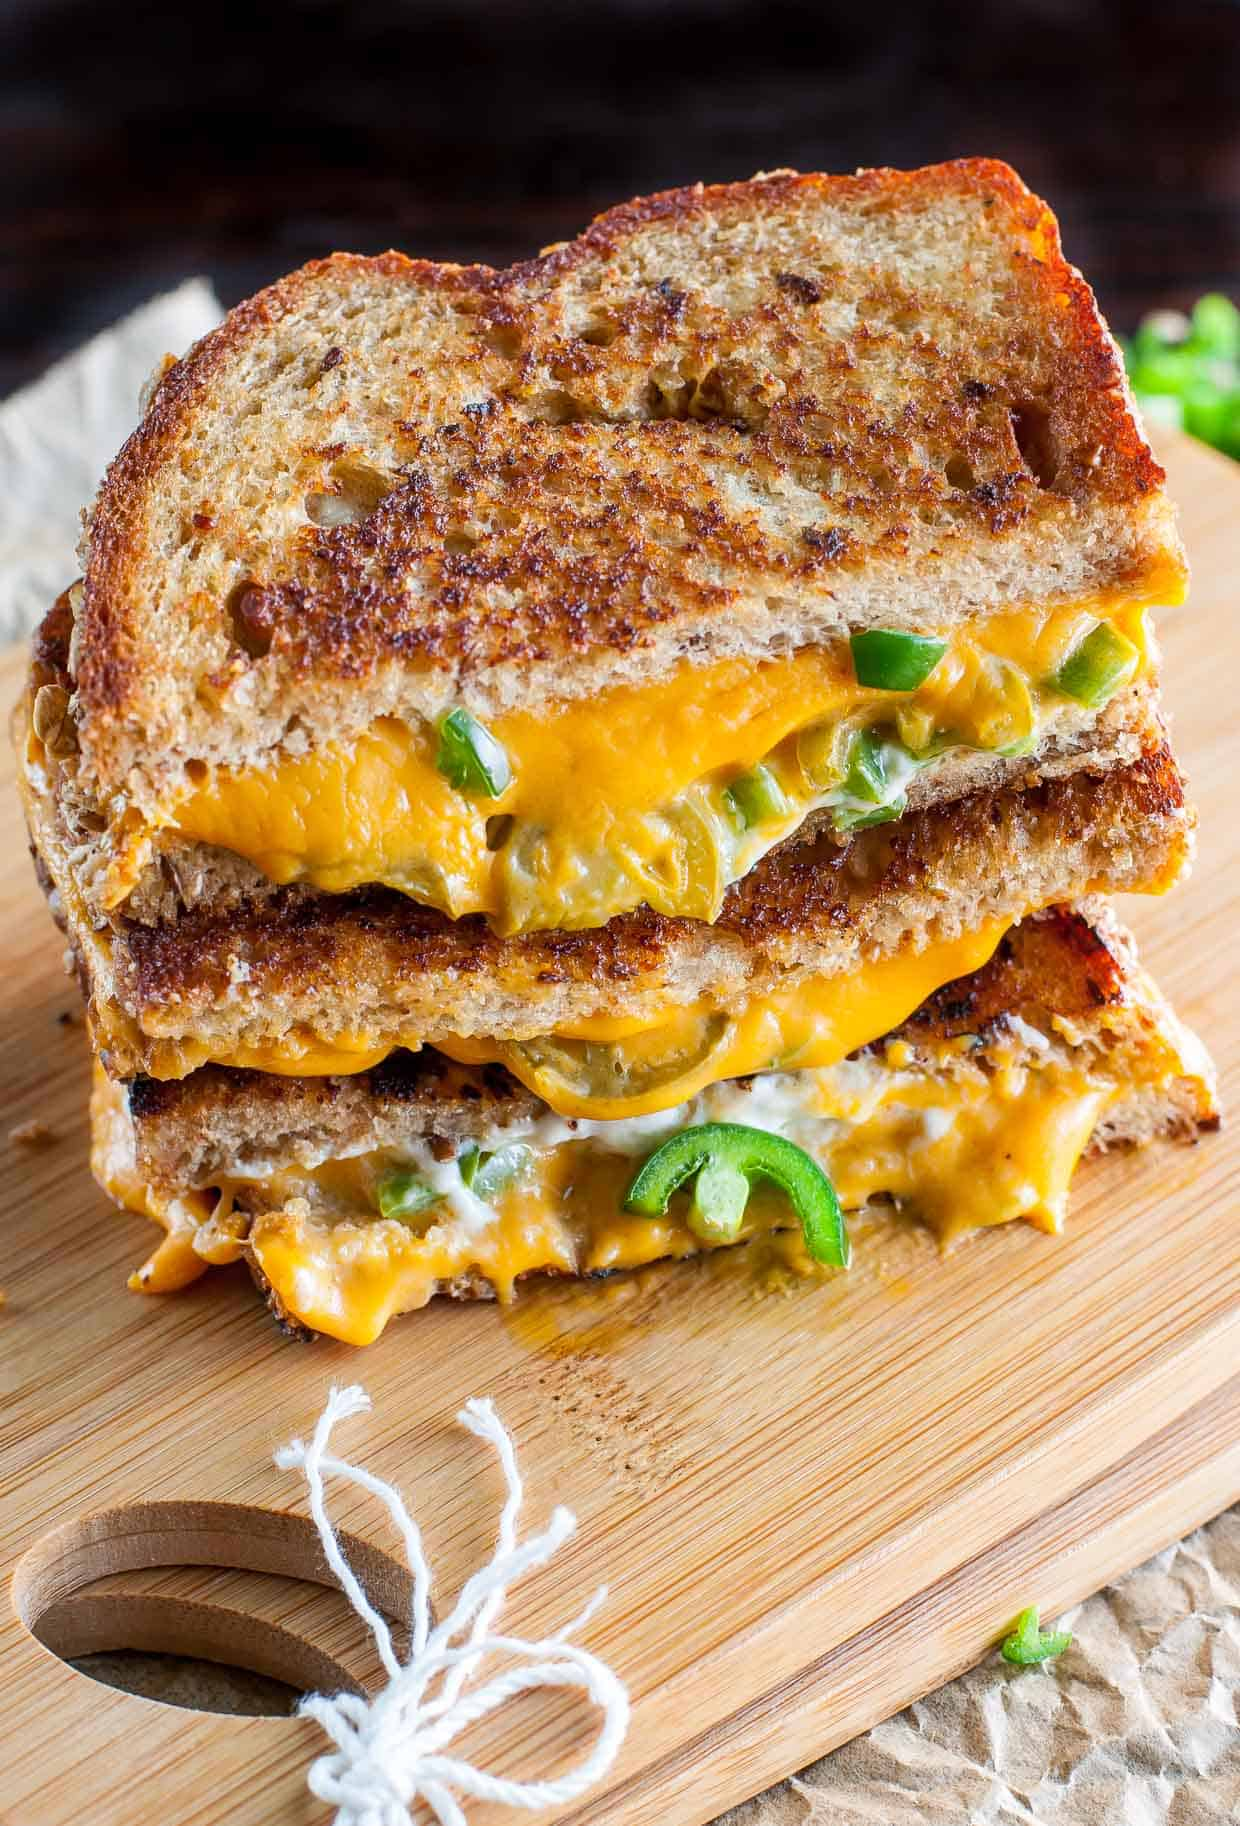 Cheesy jalapeno popper vegan grilled cheese